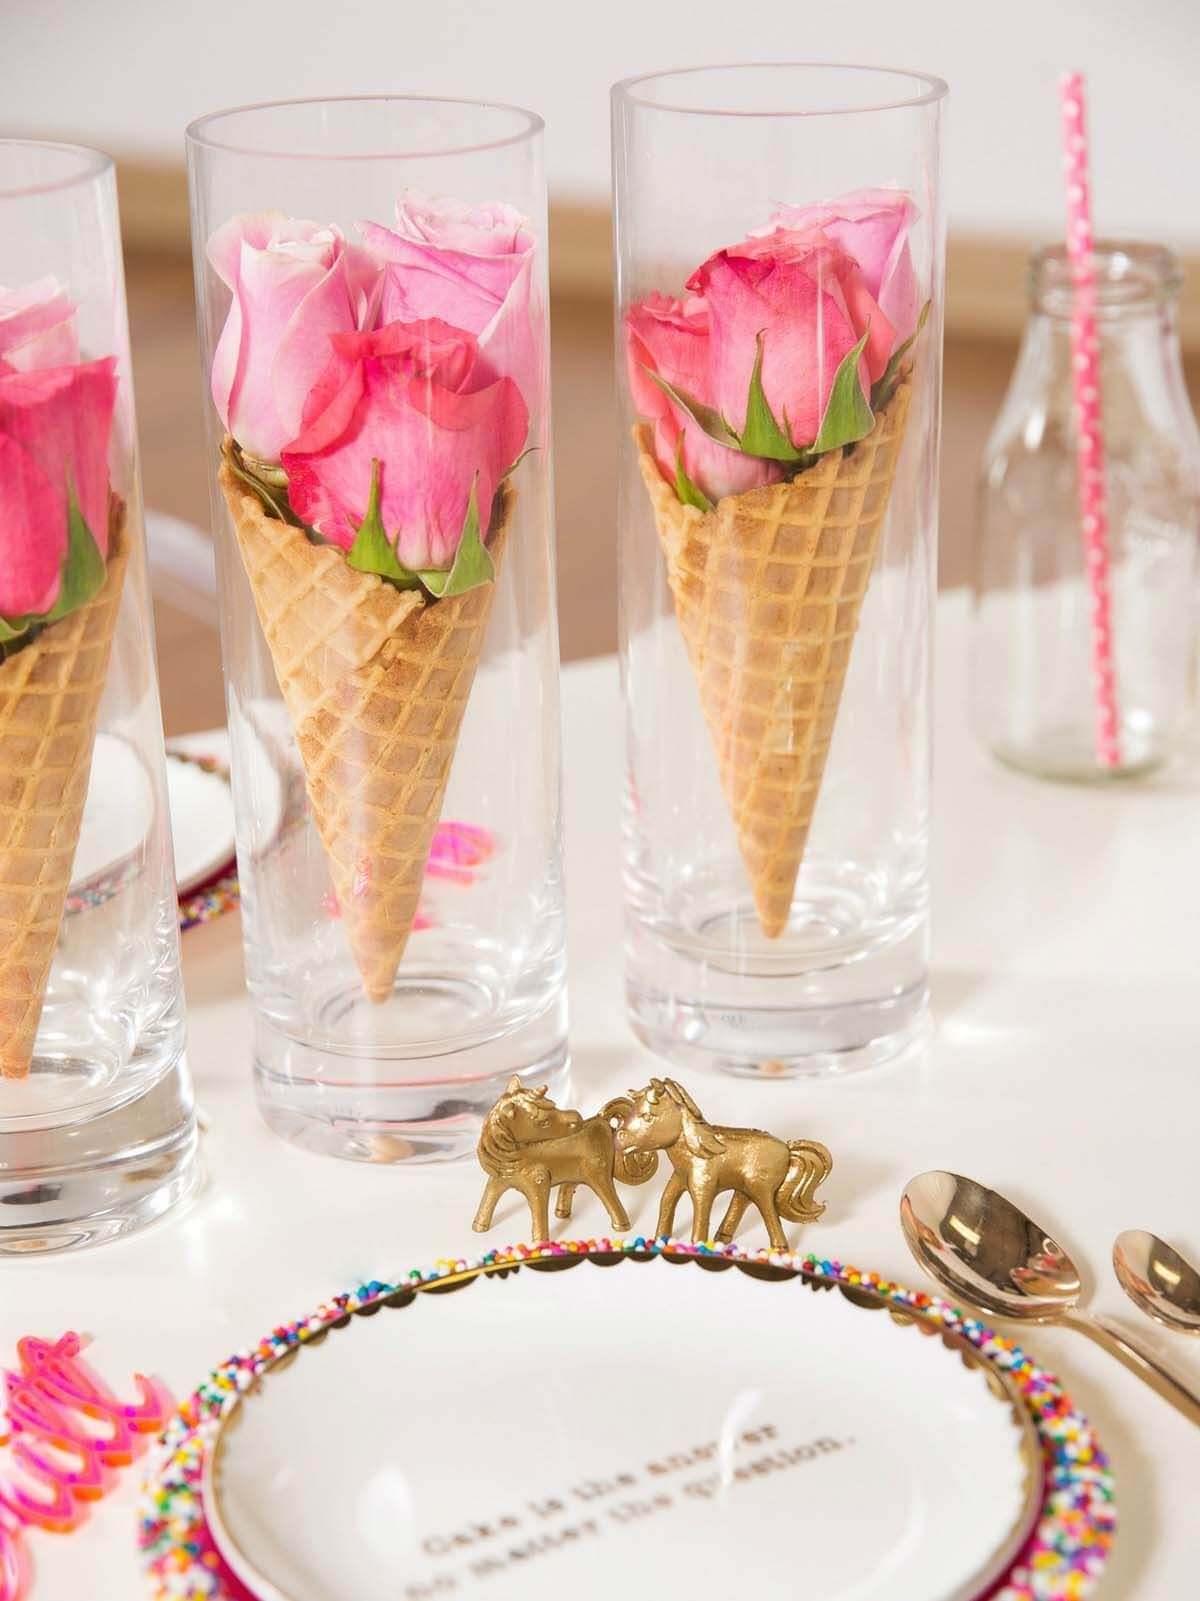 Wedding decorations list   Wedding Table Decoration Ideas for Your Special Day  Wedding